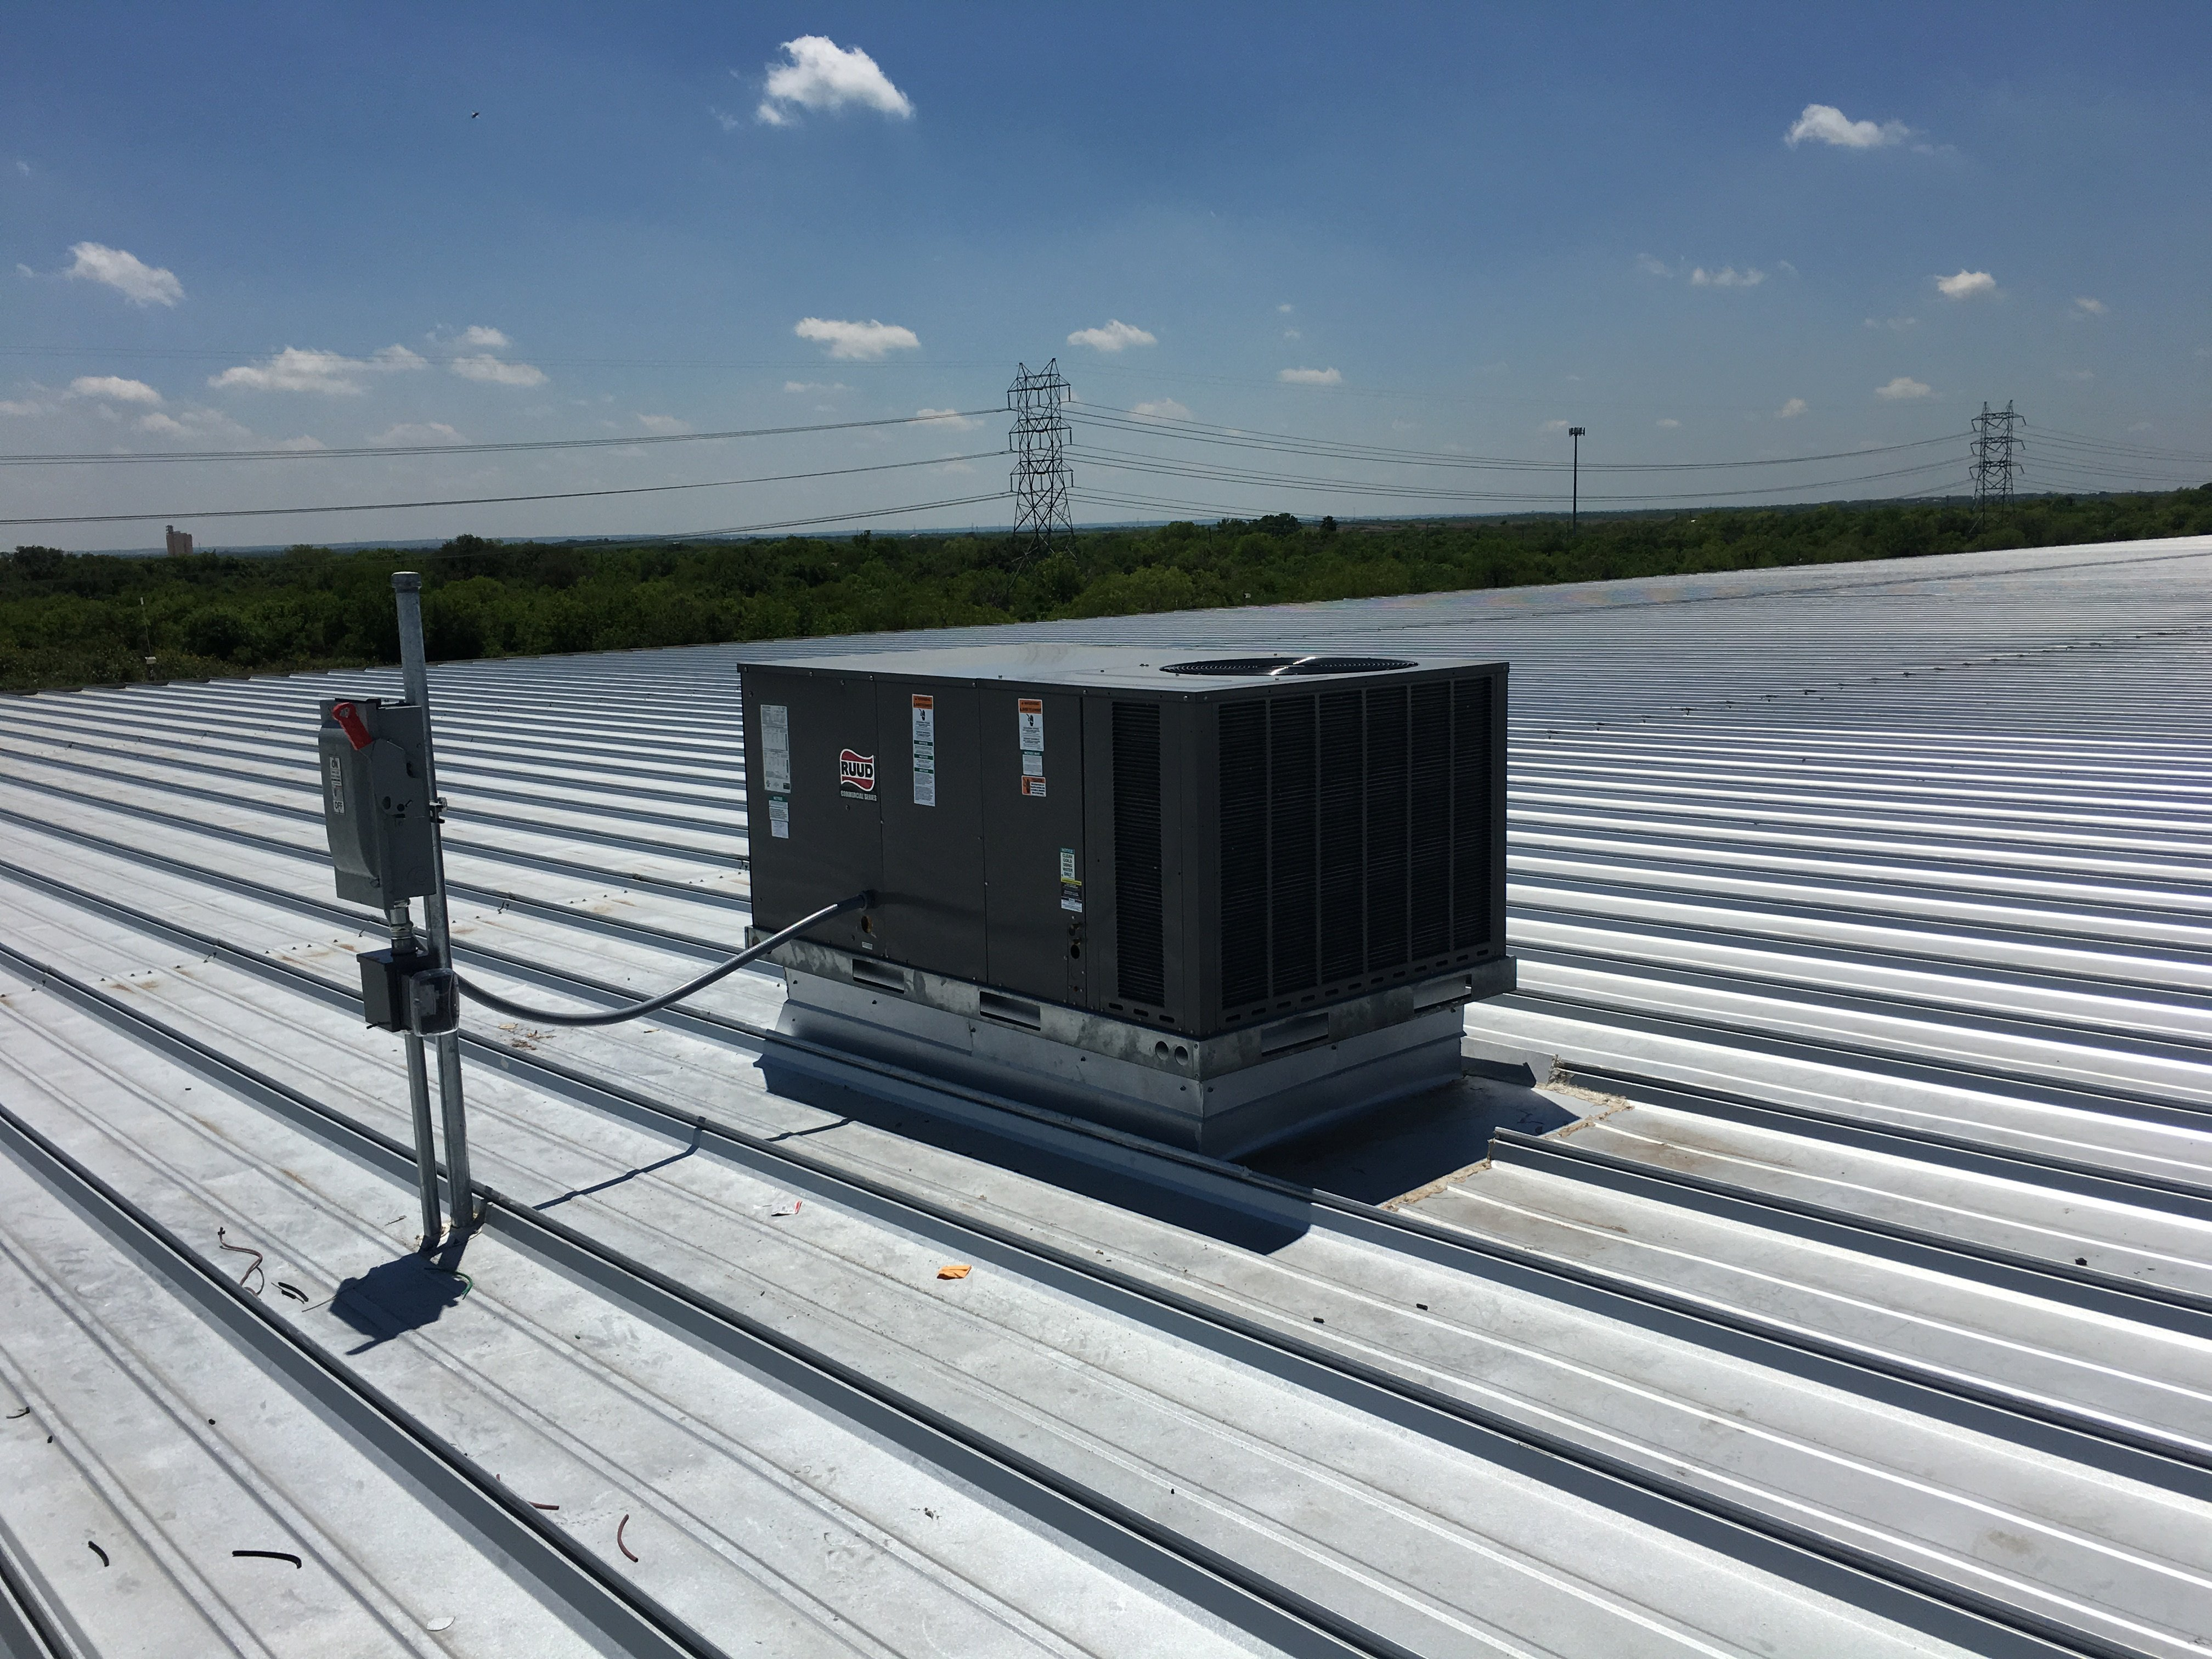 Rooftop Commercial AC Unit, San Antonio TX